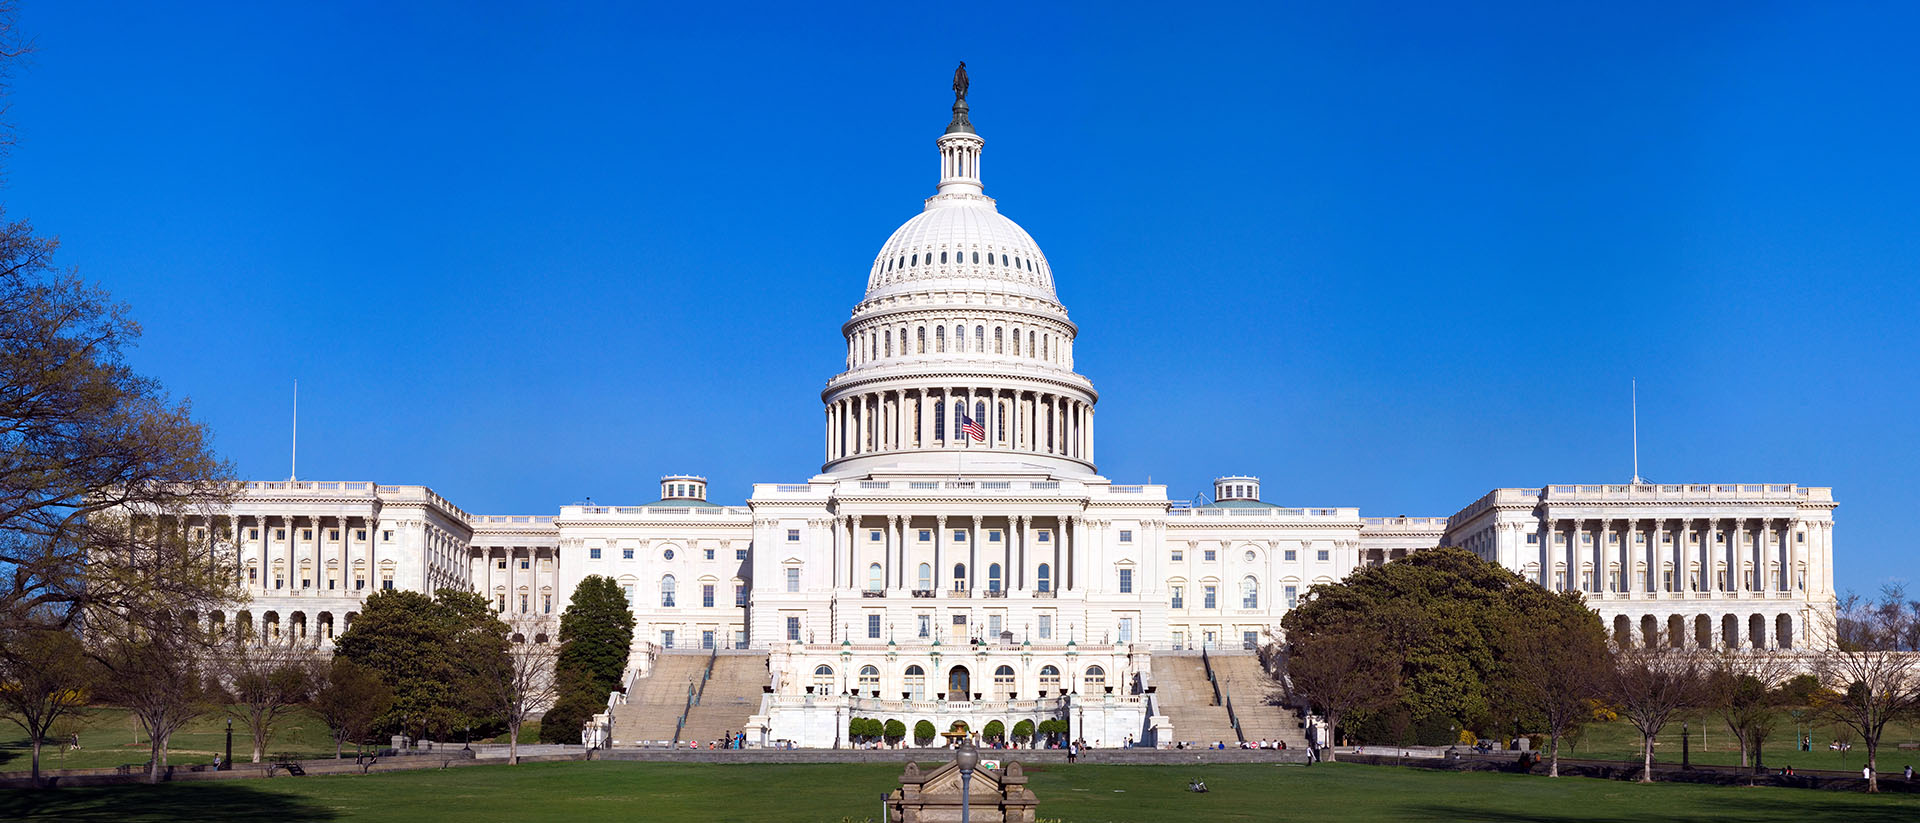 The Capitol Building - The Congress of the United States of America